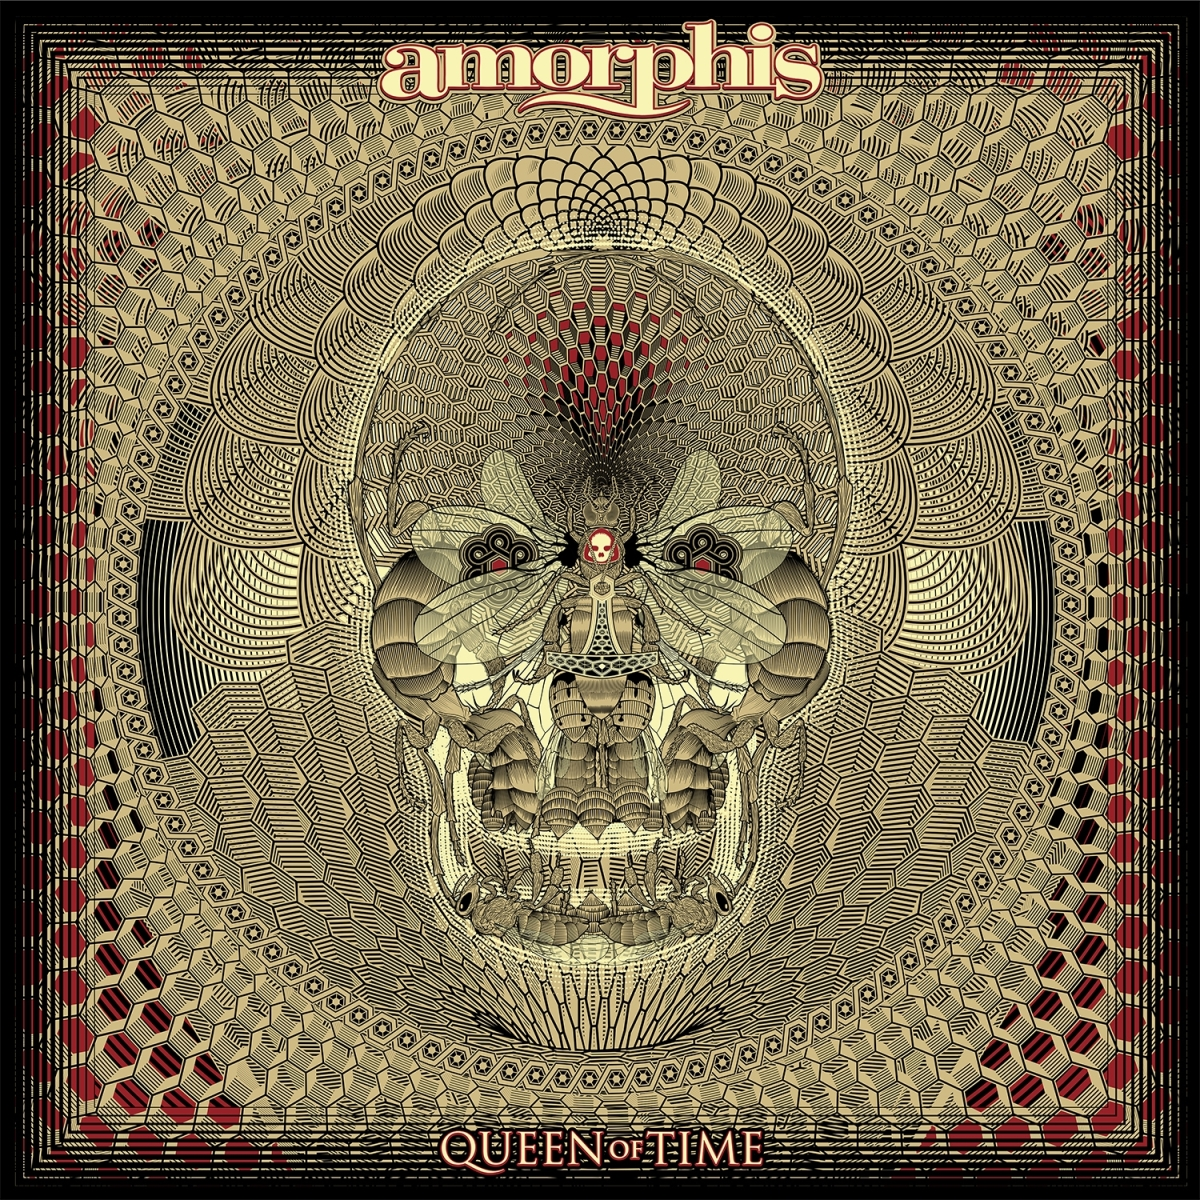 Album Review: Queen of Time- Amorphis